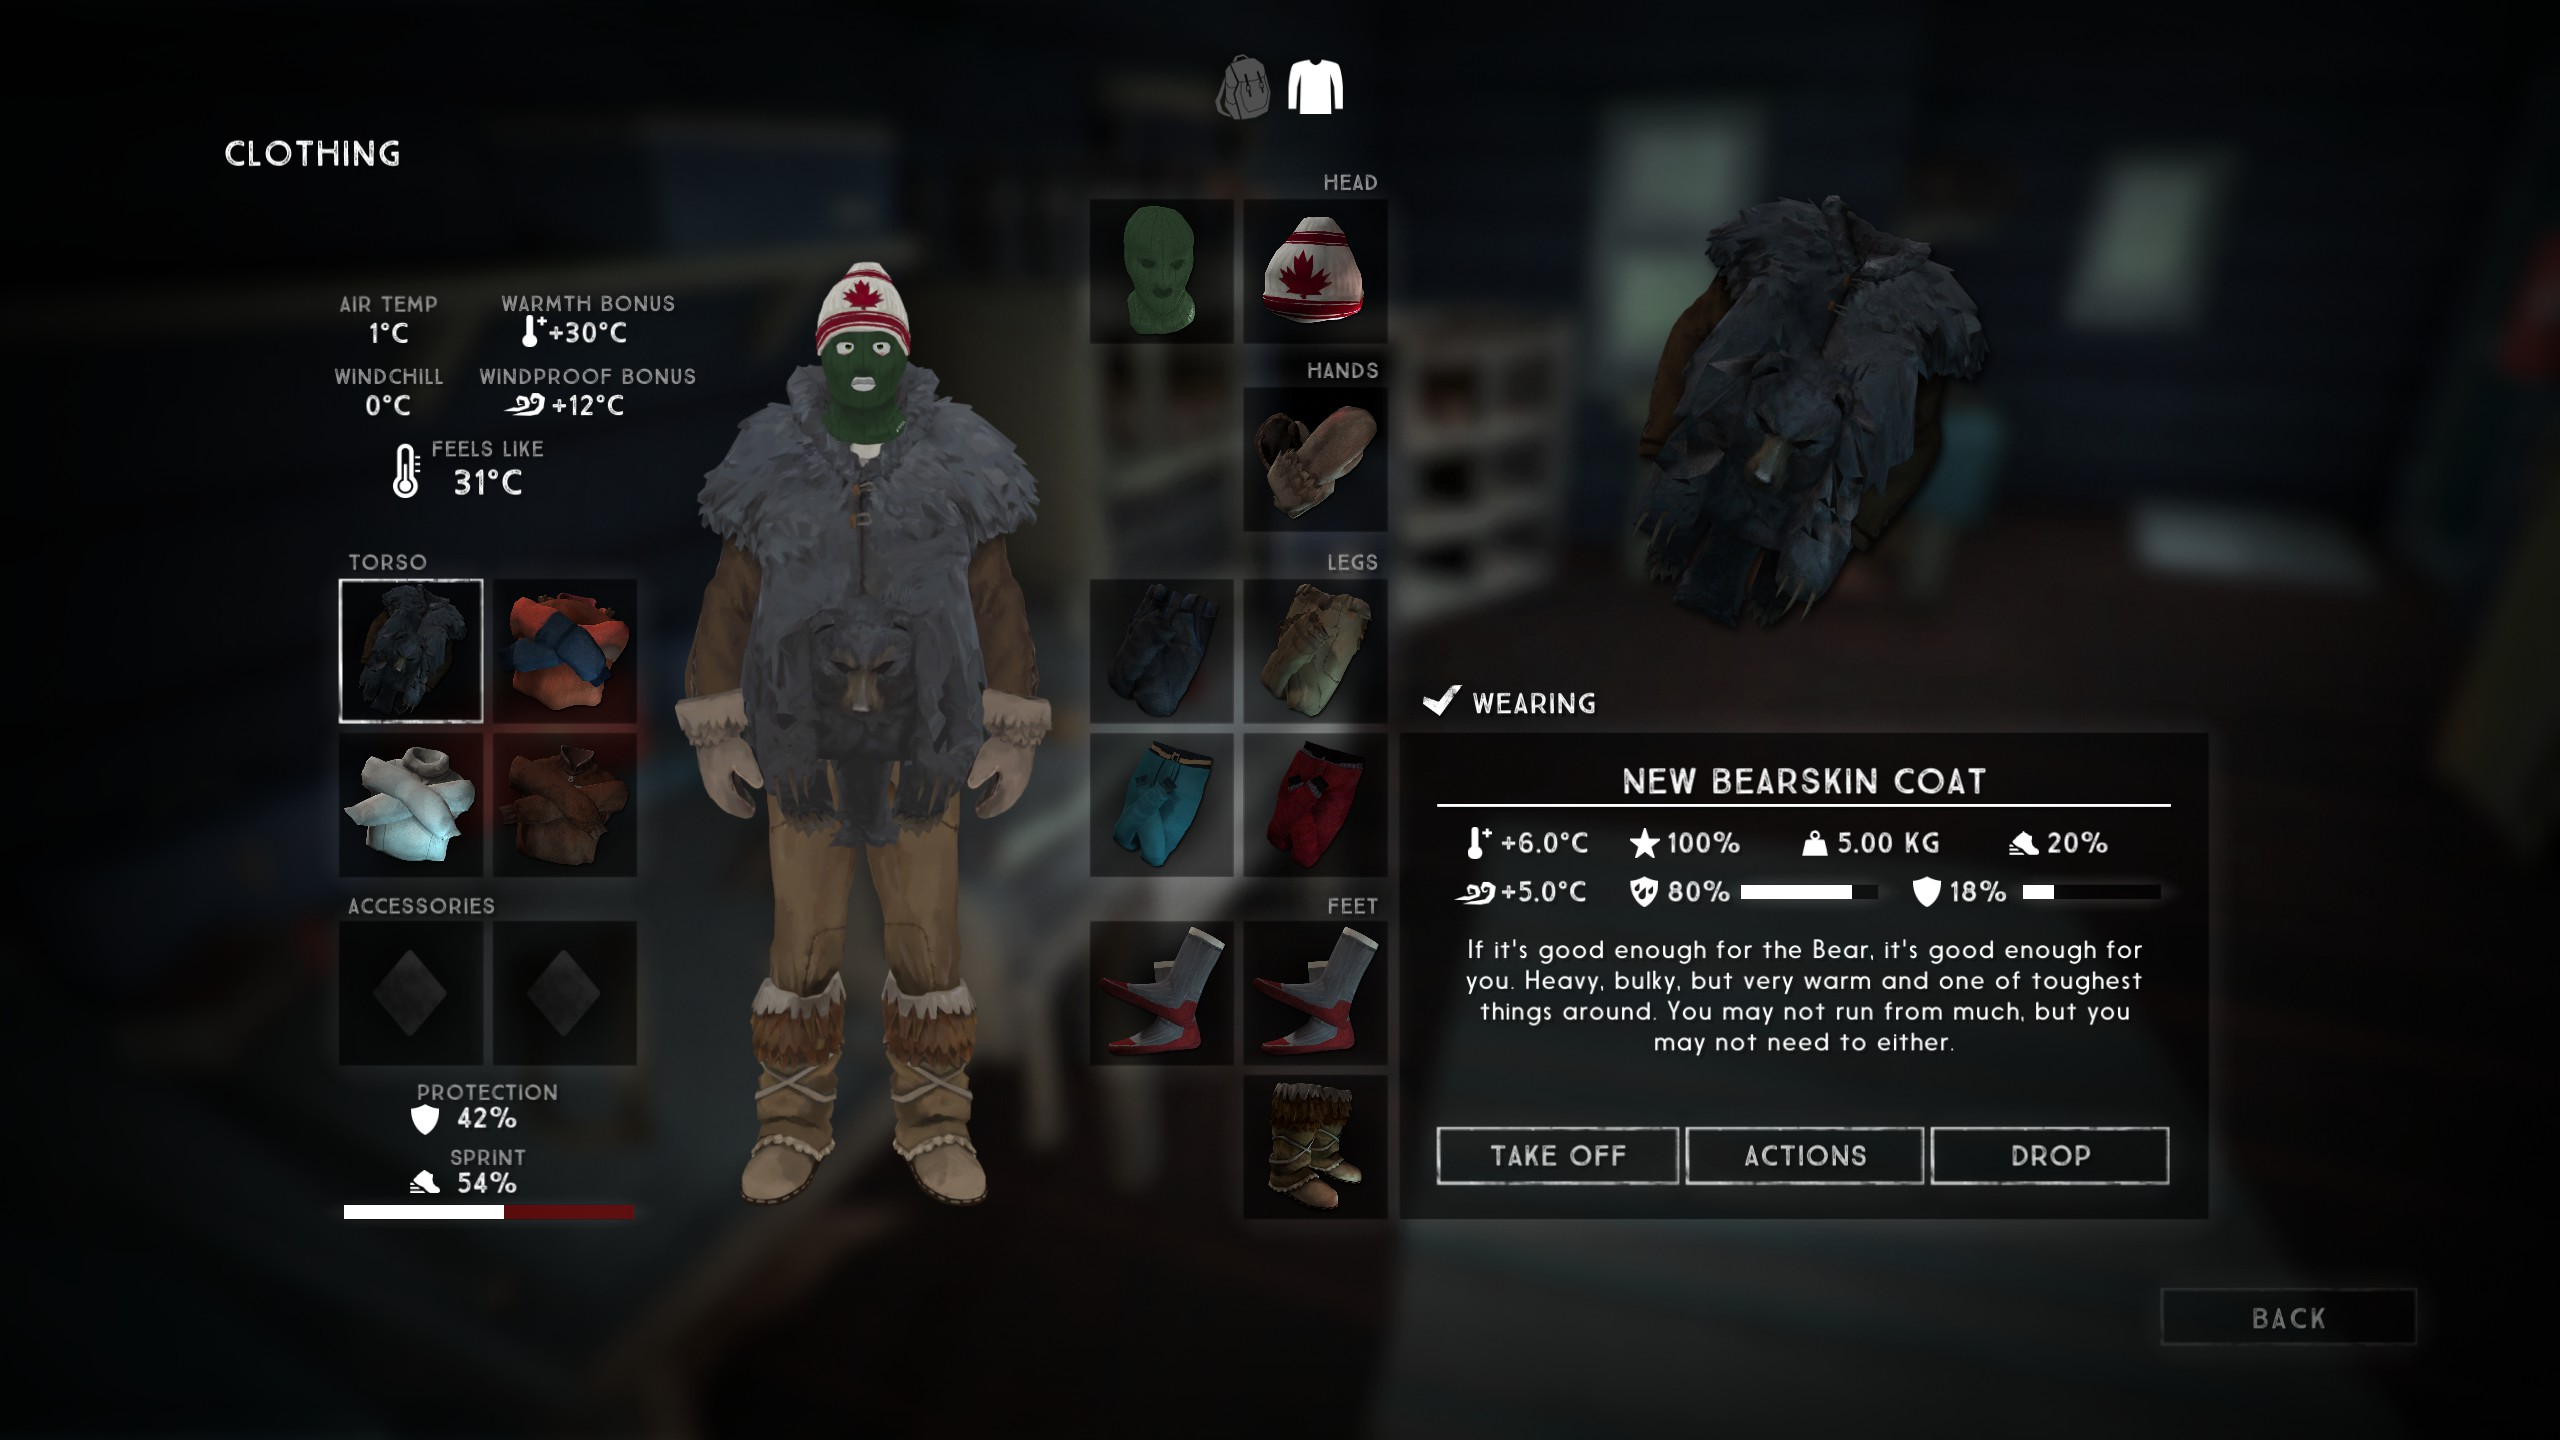 The Bearskin Coat in The Long Dark offers great warmth and protection, but is heavy and hinders mobility.